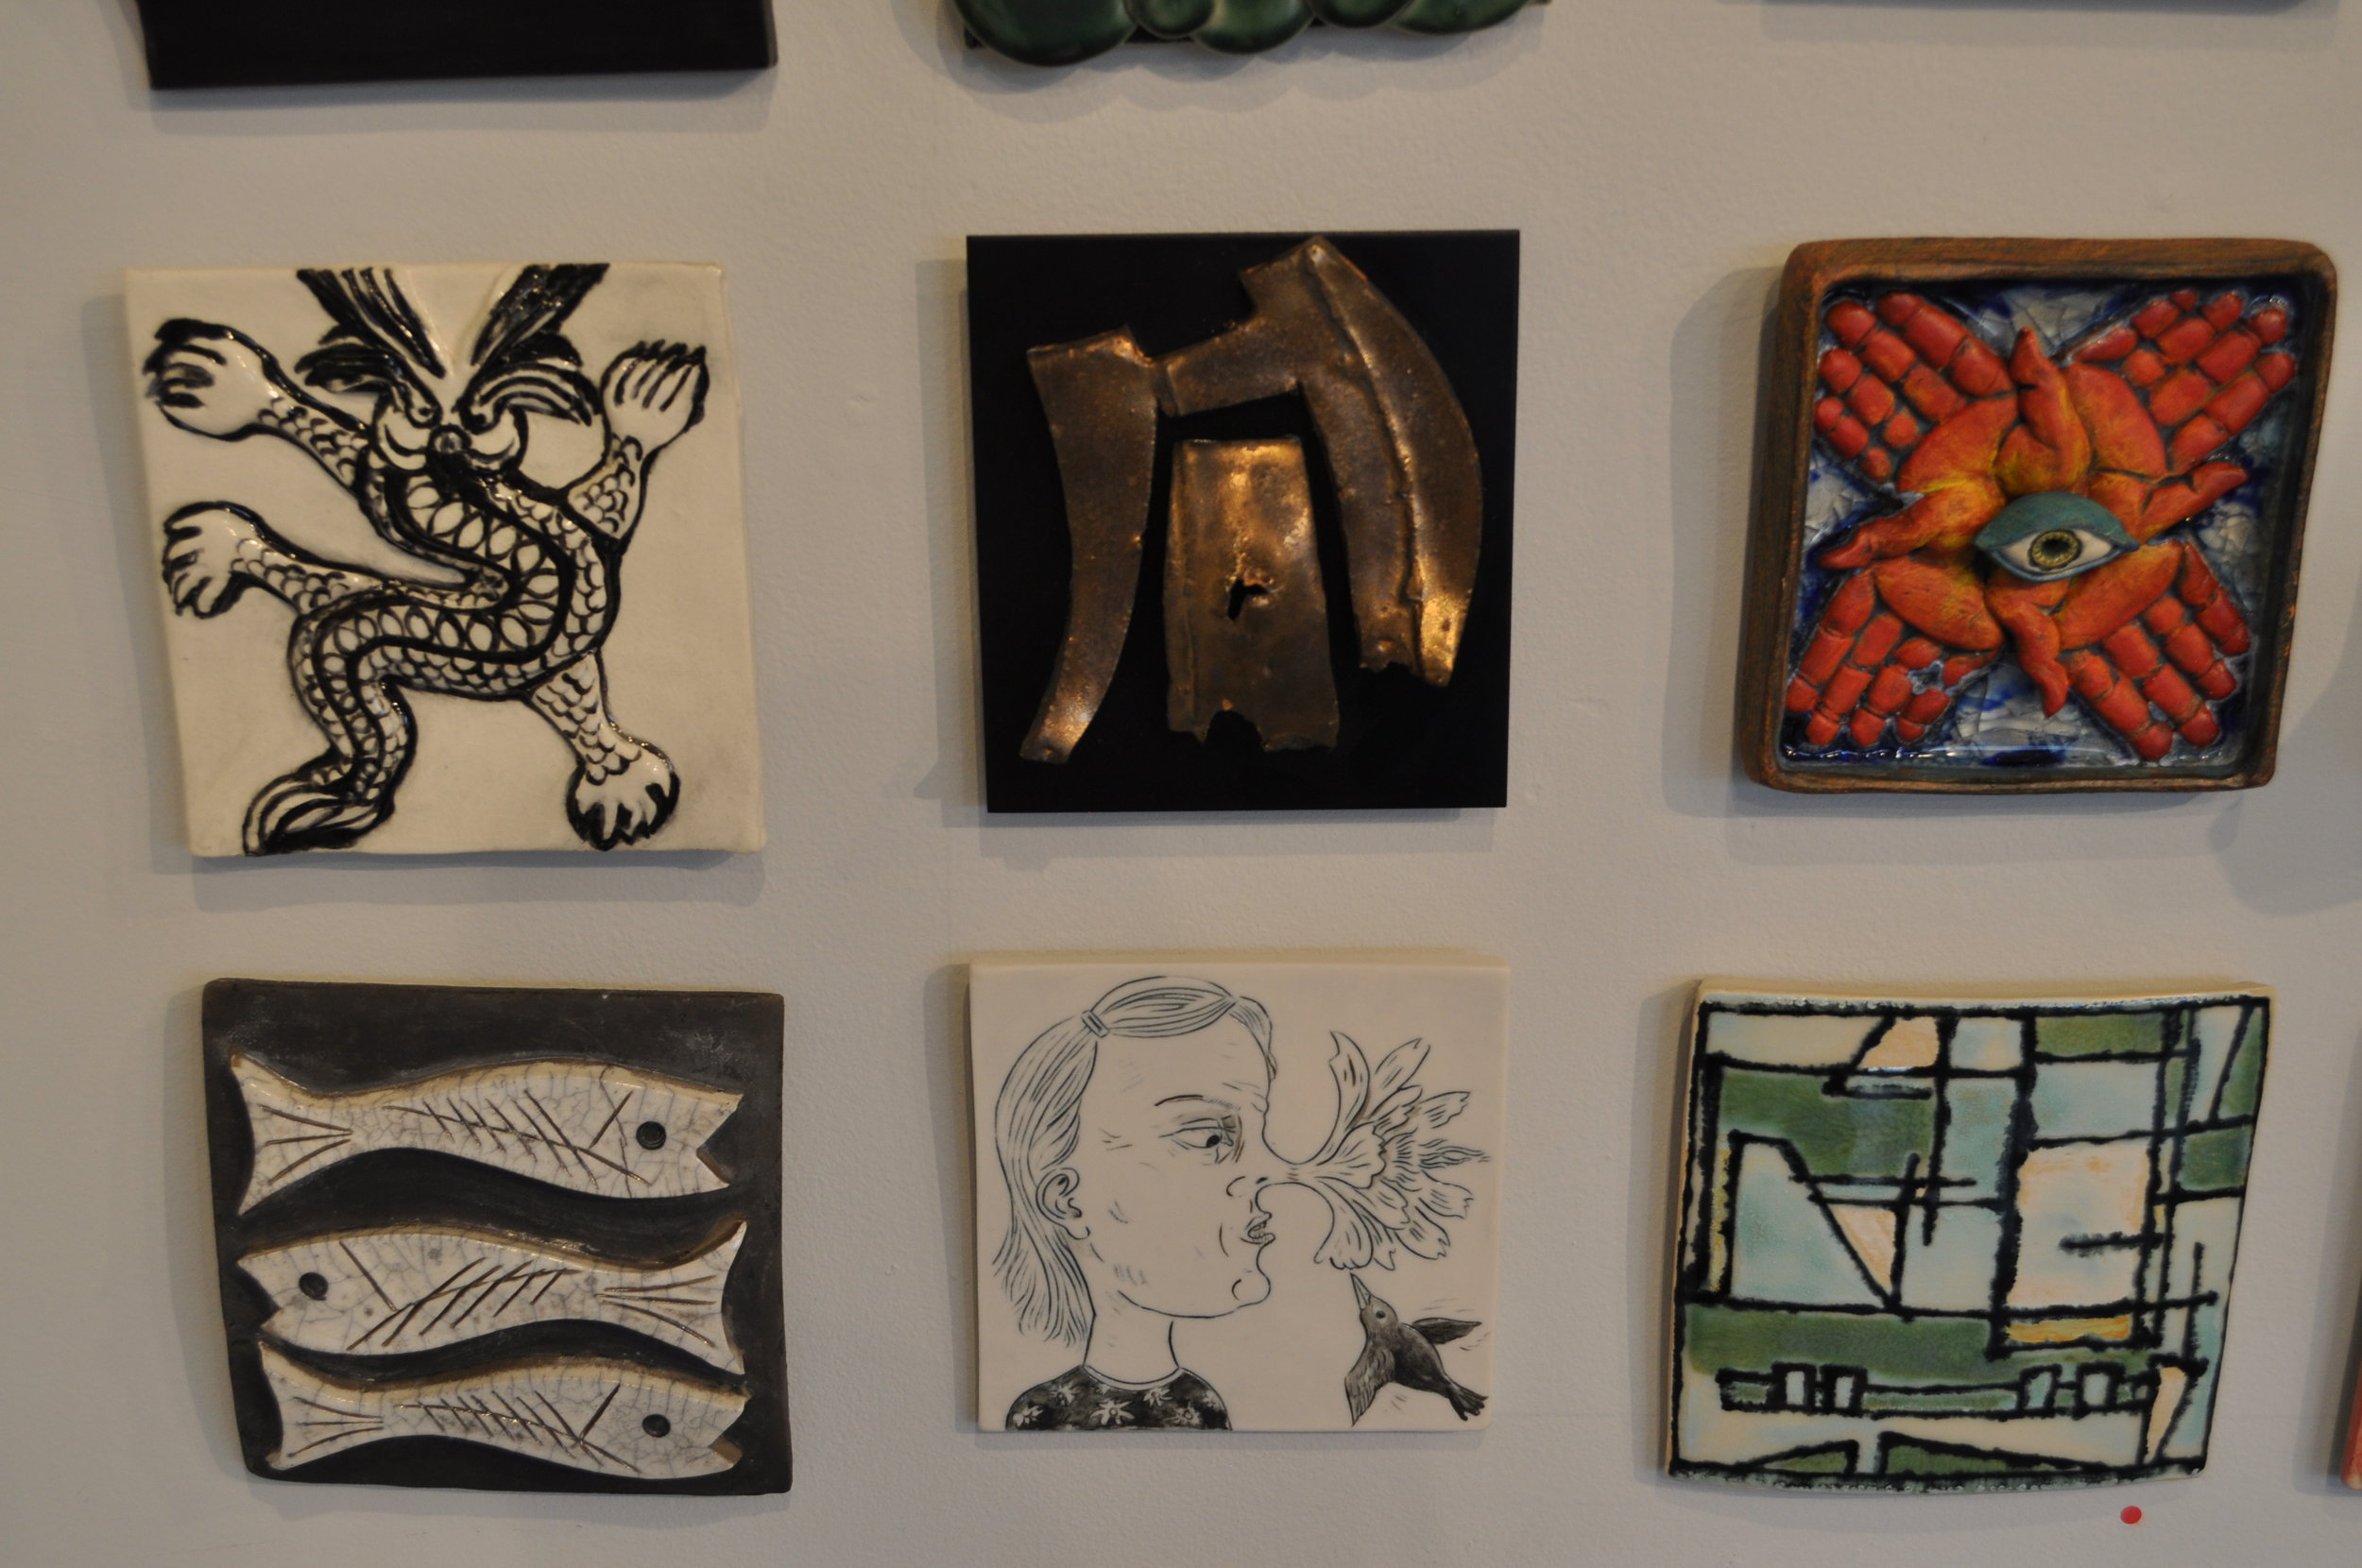 1.  Sally Aldrich,  Beauty In the Beast  $50  2. Jeff Shapiro,  Untitled  $250  3.  Mary Cloonan,  Whirlwind  $175  4. Rimmie Mosley,  Trio #1  $75  5.     Cynthia Consentino,  Flower Nose  $150  6.  Roni Cohen,  Homage To Mondrian 3  (SOLD)